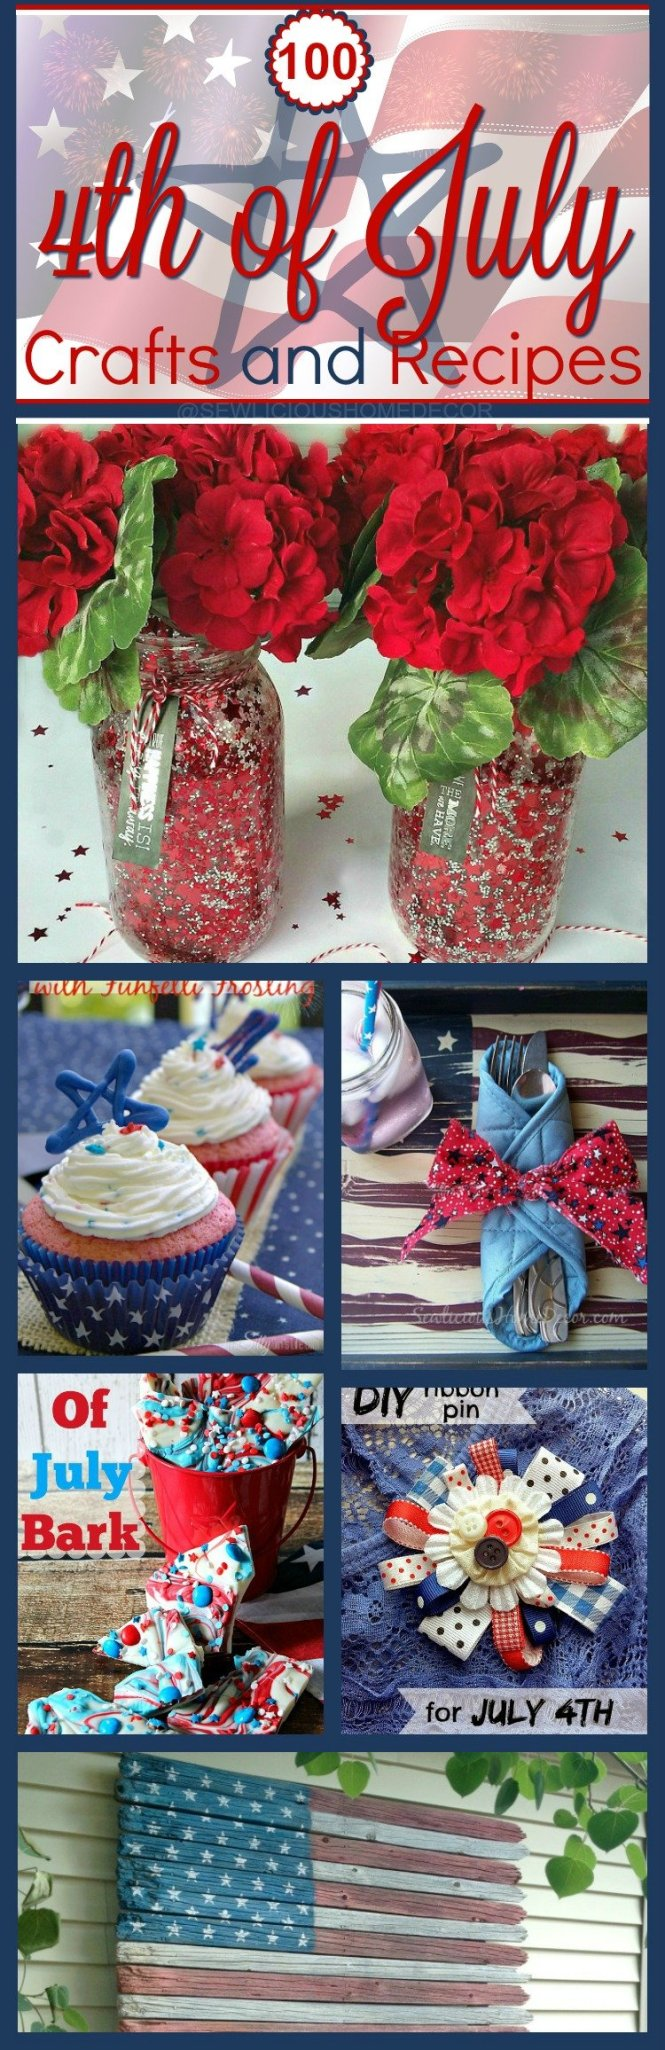 Fourth of July Crafts and Recipes at sewlicioushomedecor.com